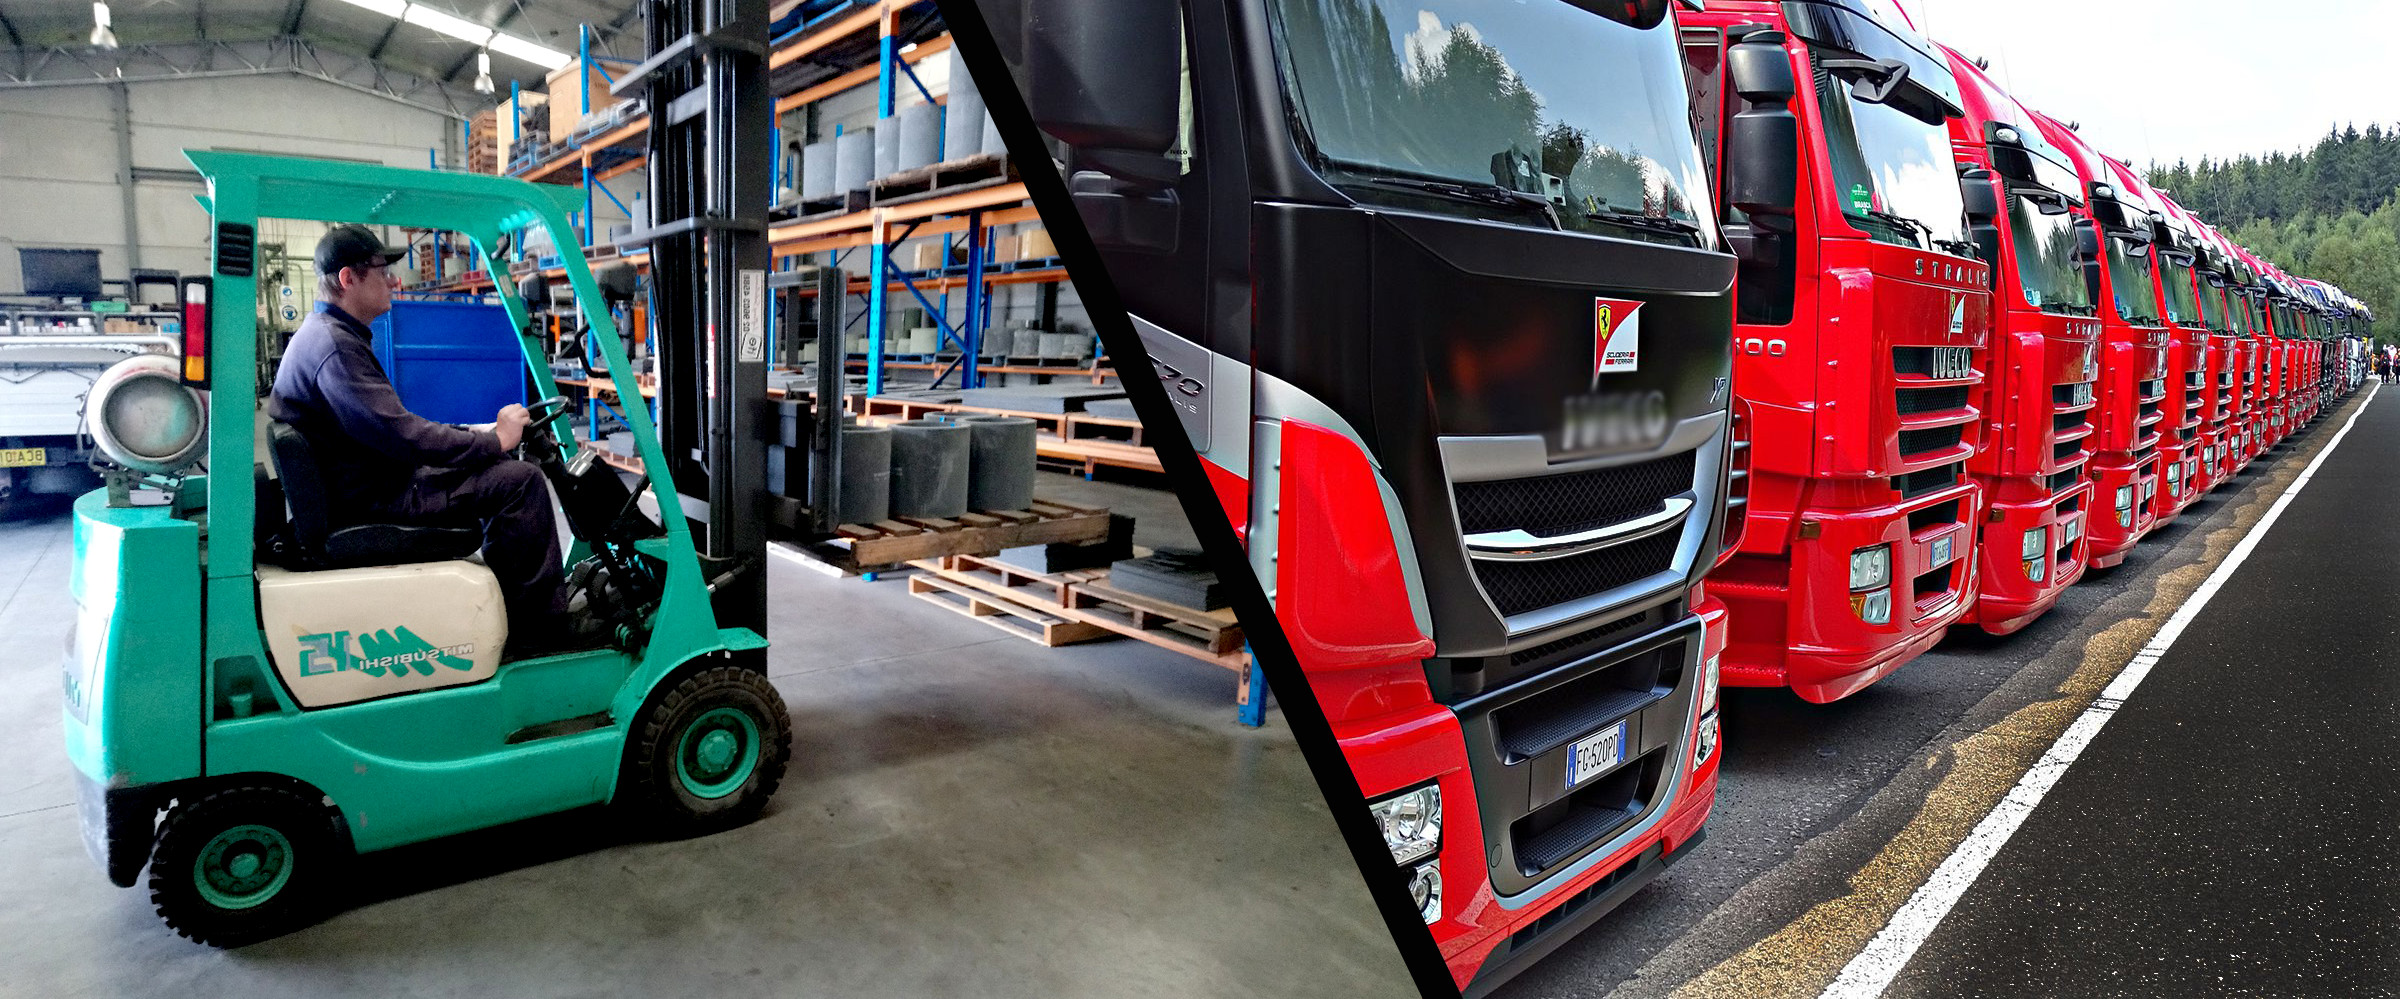 bca friction, transport, logistics, freight, commercial, trucks, forklift, brakes, clutch, suppliers, sydney, australia